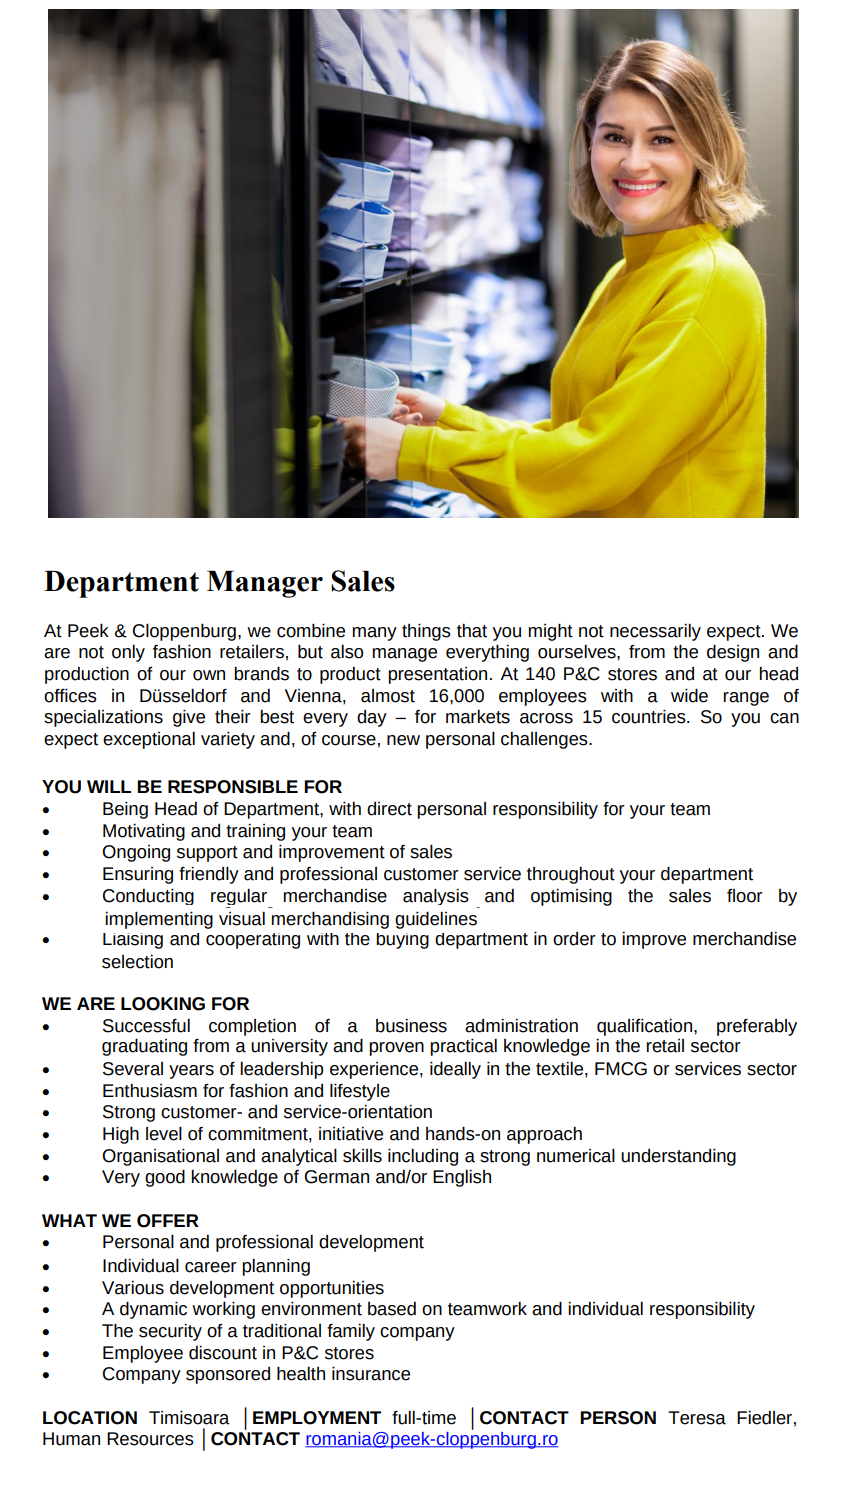 Department Manager Sales At Peek & Cloppenburg, we combine many things that you might not necessarily expect. We are not only fashion retailers, but also manage everything ourselves, from the design and production of our own brands to product presentation. At 140 P&C stores and at our head offices in Düsseldorf and Vienna, almost 16,000 employees with a wide range of specializations give their best every day – for markets across 15 countries. So you can expect exceptional variety and, of course, new personal challenges. YOU WILL BE RESPONSIBLE FOR  Being Head of Department, with direct personal responsibility for your team  Motivating and training your team  Ongoing support and improvement of sales  Ensuring friendly and professional customer service throughout your department  Conducting regular merchandise analysis and optimising the sales floor by implementing visual merchandising guidelines  Liaising and cooperating with the buying department in order to improve merchandise selection WE ARE LOOKING FOR  Successful completion of a business administration qualification, preferably graduating from a university and proven practical knowledge in the retail sector  Several years of leadership experience, ideally in the textile, FMCG or services sector  Enthusiasm for fashion and lifestyle  Strong customer- and service-orientation  High level of commitment, initiative and hands-on approach  Organisational and analytical skills including a strong numerical understanding  Very good knowledge of German and/or English WHAT WE OFFER  Personal and professional development  Individual career planning  Various development opportunities  A dynamic working environment based on teamwork and individual responsibility  The security of a traditional family company  Employee discount in P&C stores  Company sponsored health insurance LOCATION Timisoara │EMPLOYMENT full-time │CONTACT PERSON Teresa Fiedler, Human Resources │CONTACT romania@peek-cloppenburg.ro